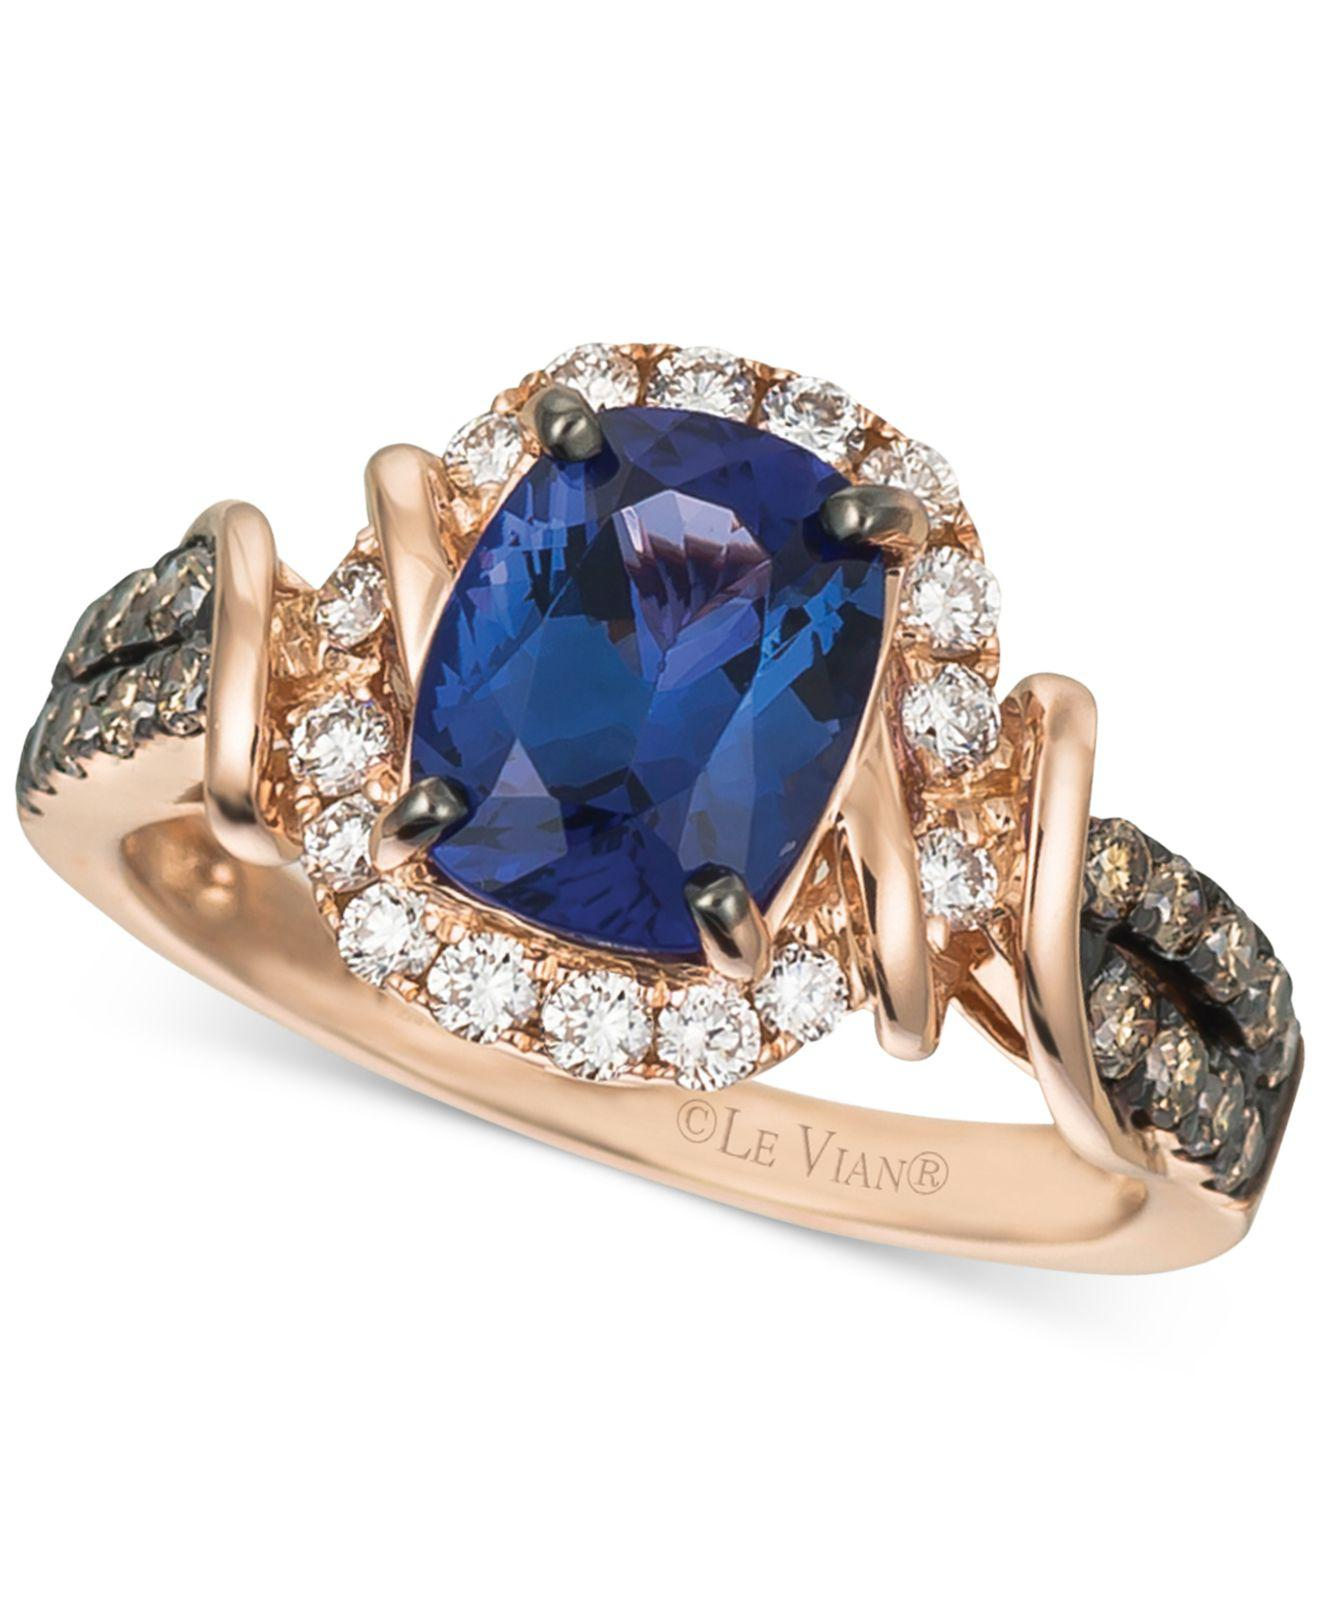 best ring blueberry jewelry on le jewelery pinterest ljsdavies jewellery rings vian images jewel tanzanite beautiful and